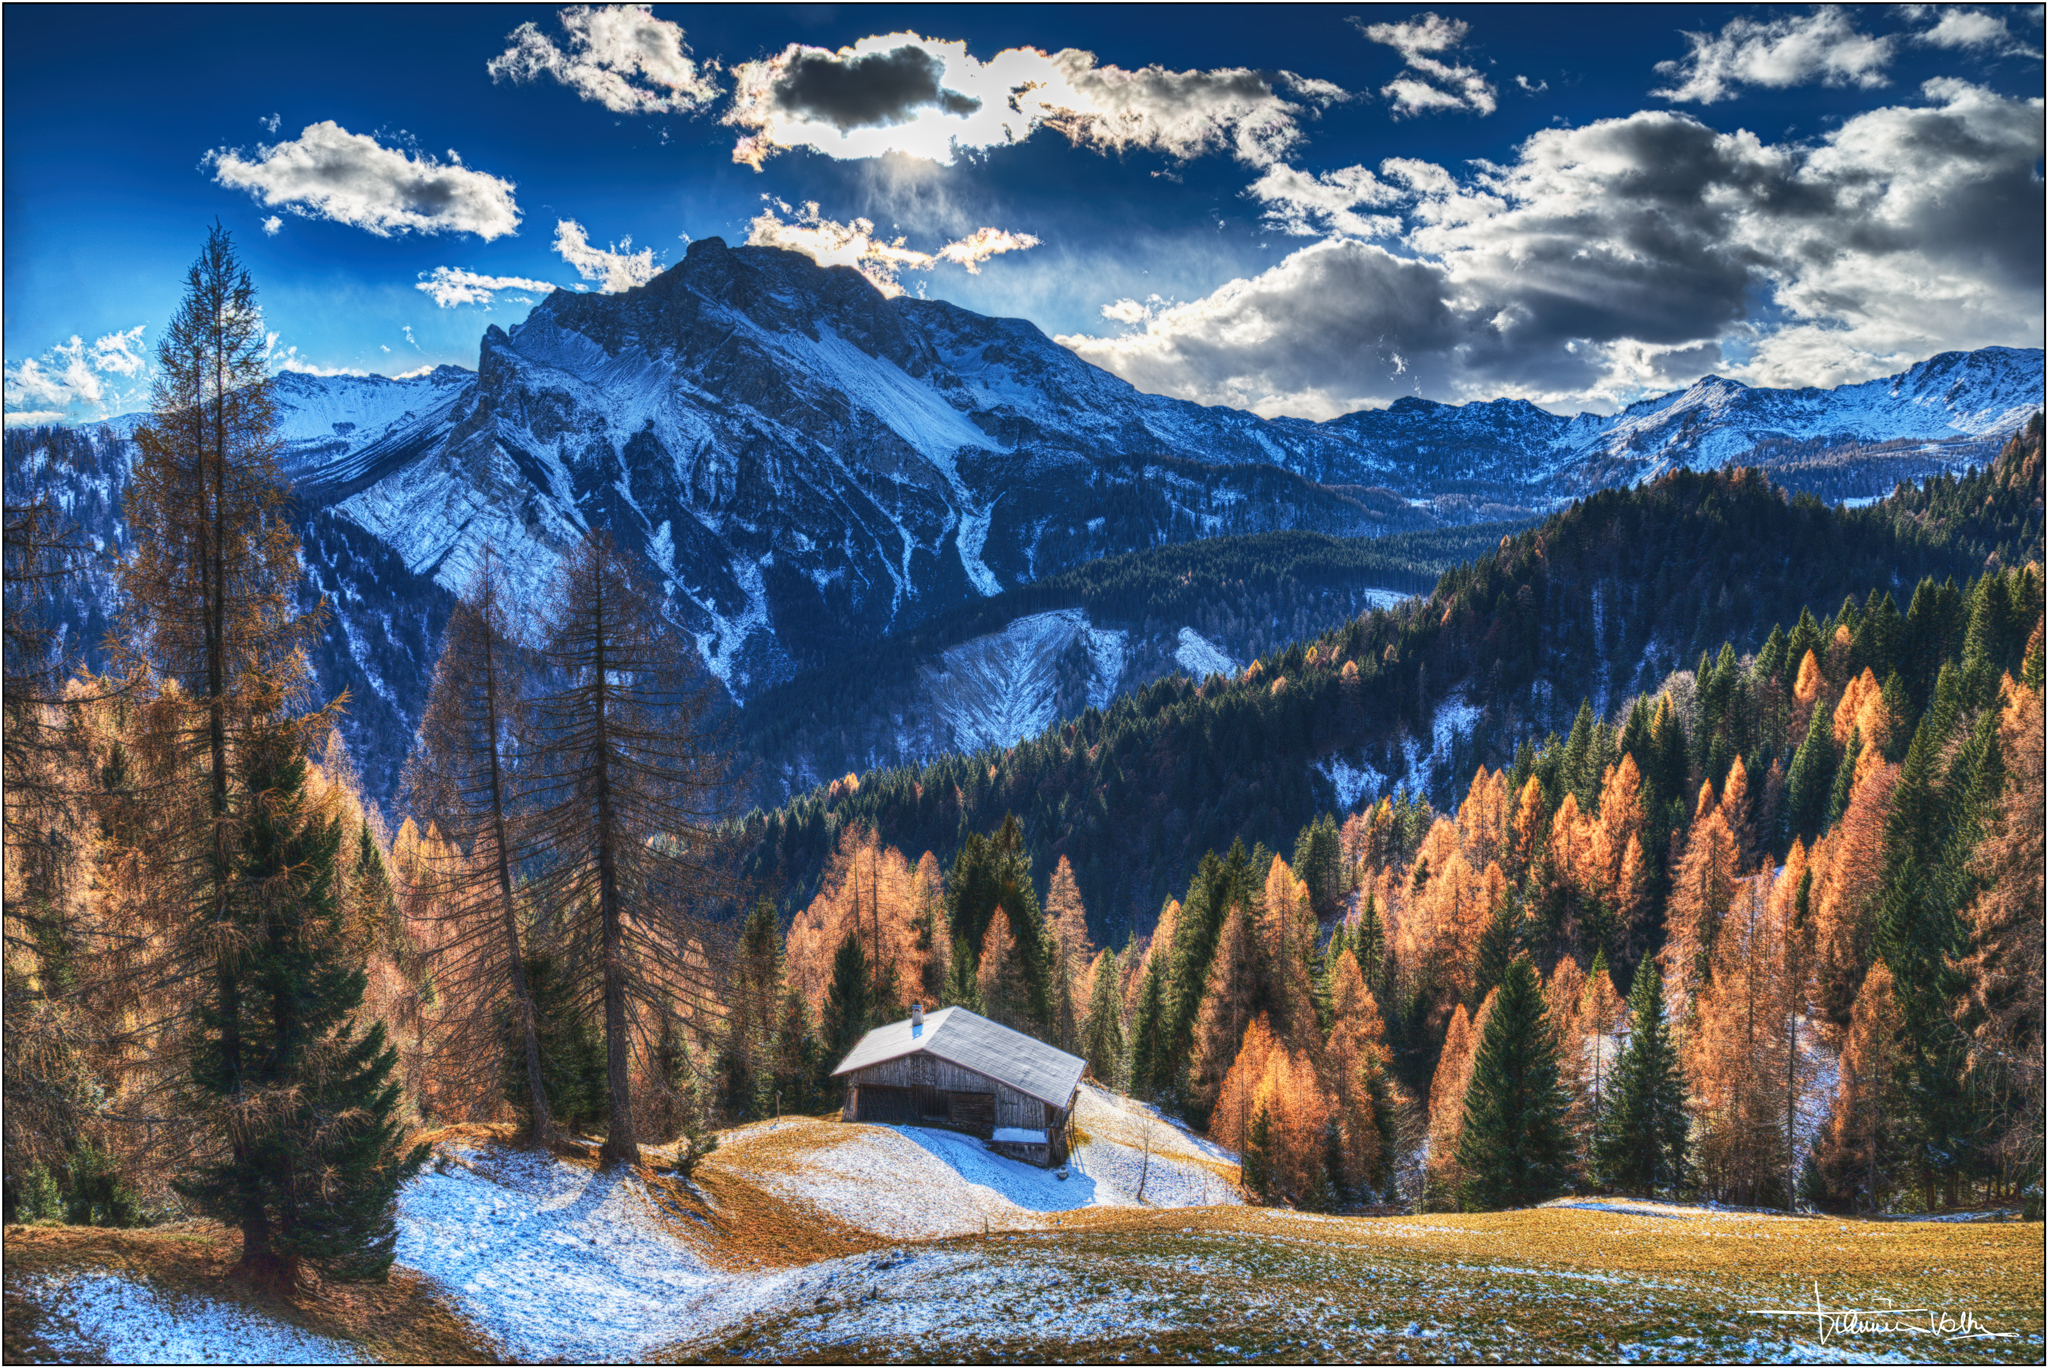 Autumn in the mountains....